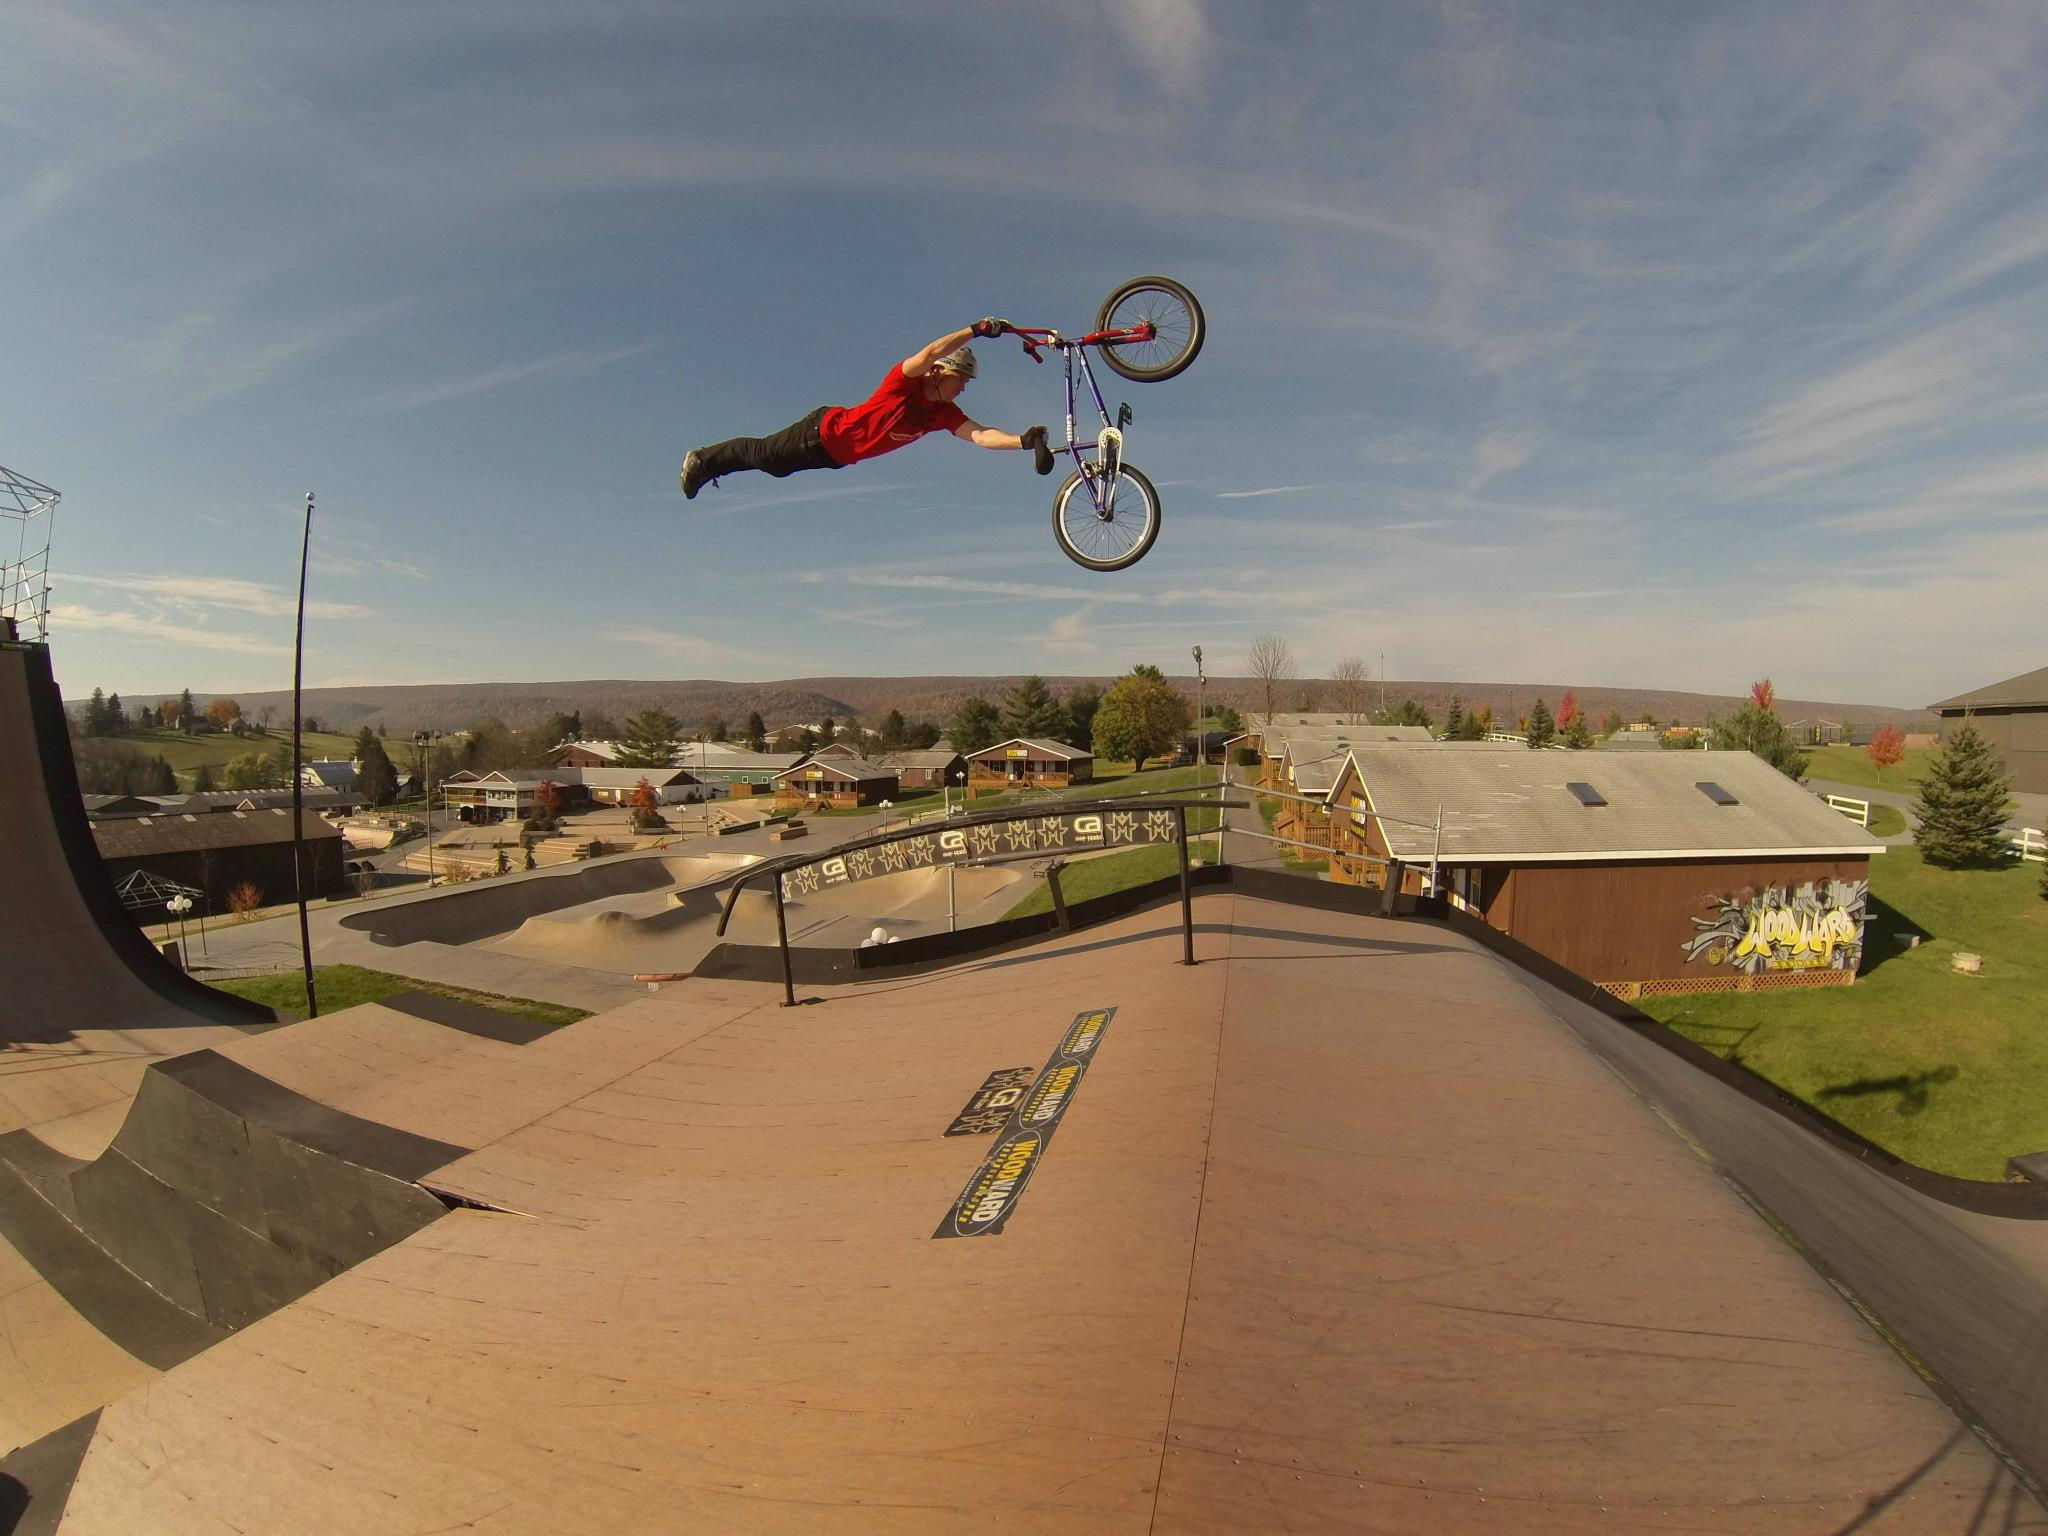 BMX Superman seat grab self portrait with HERO3 by GoPro athlete Chad Kagy